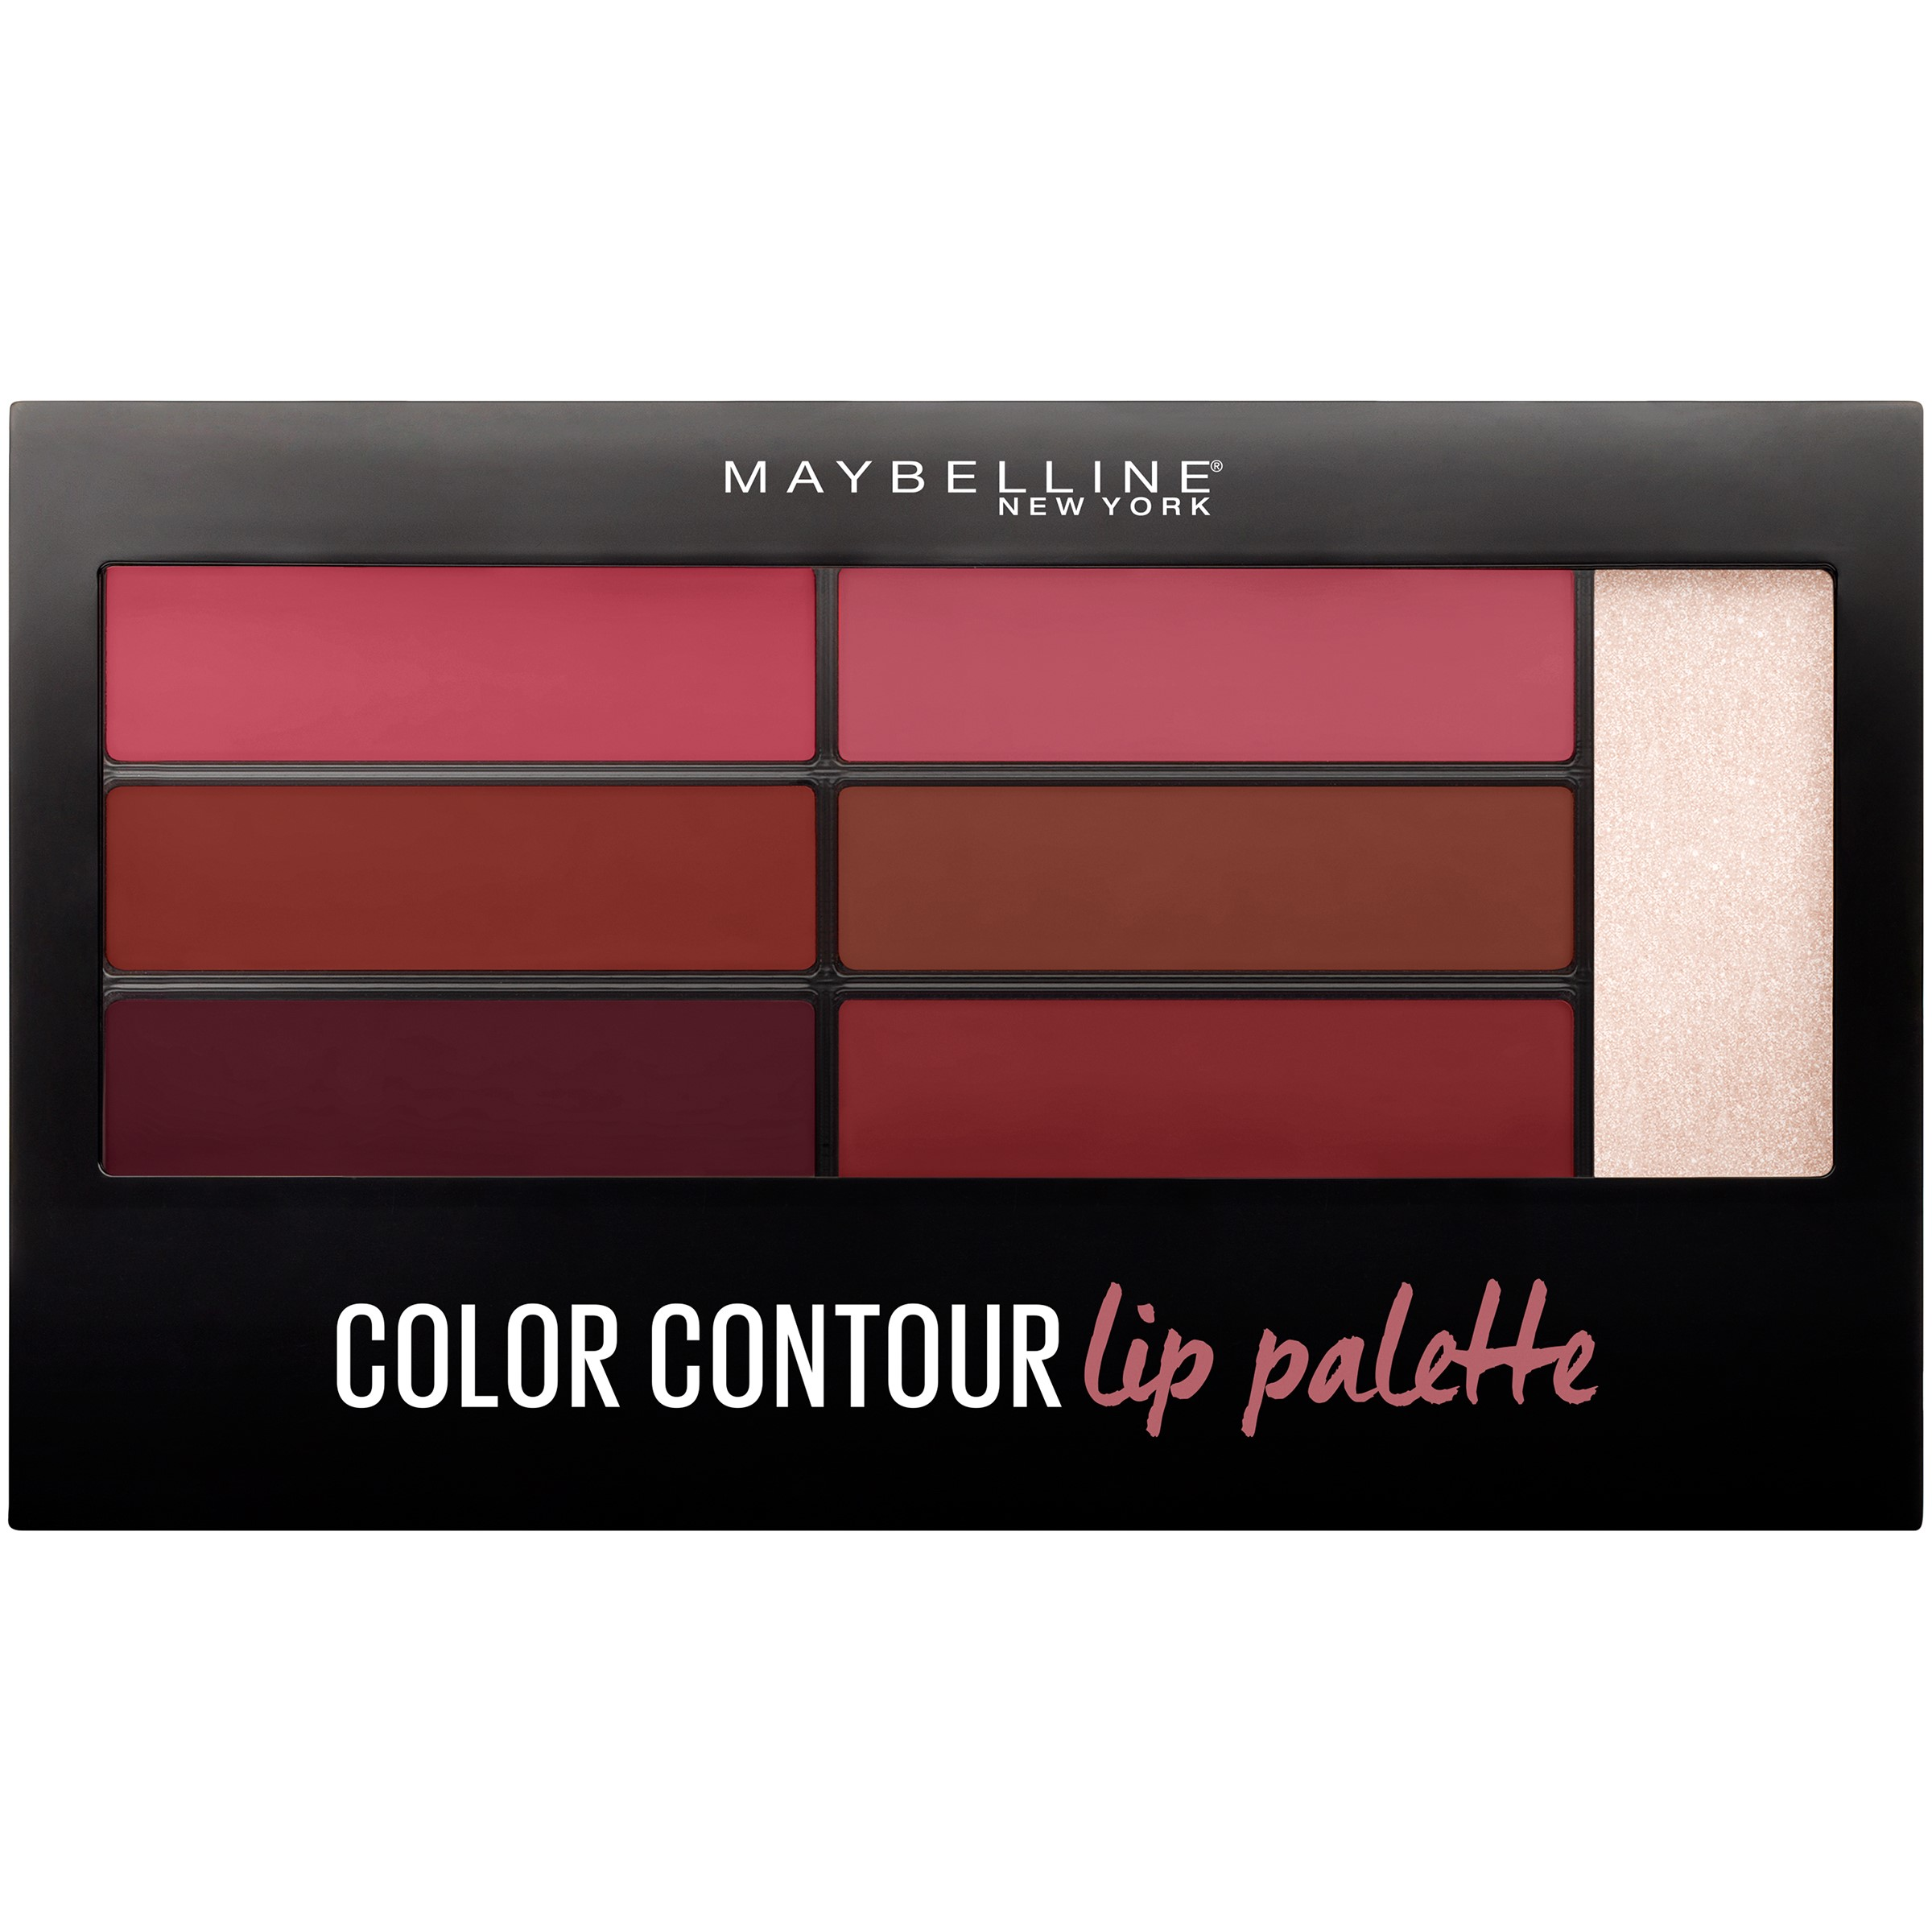 Maybelline New York Lip Studio Color Contour Lip Palette, Blushed Bombshell, 0.17 Oz